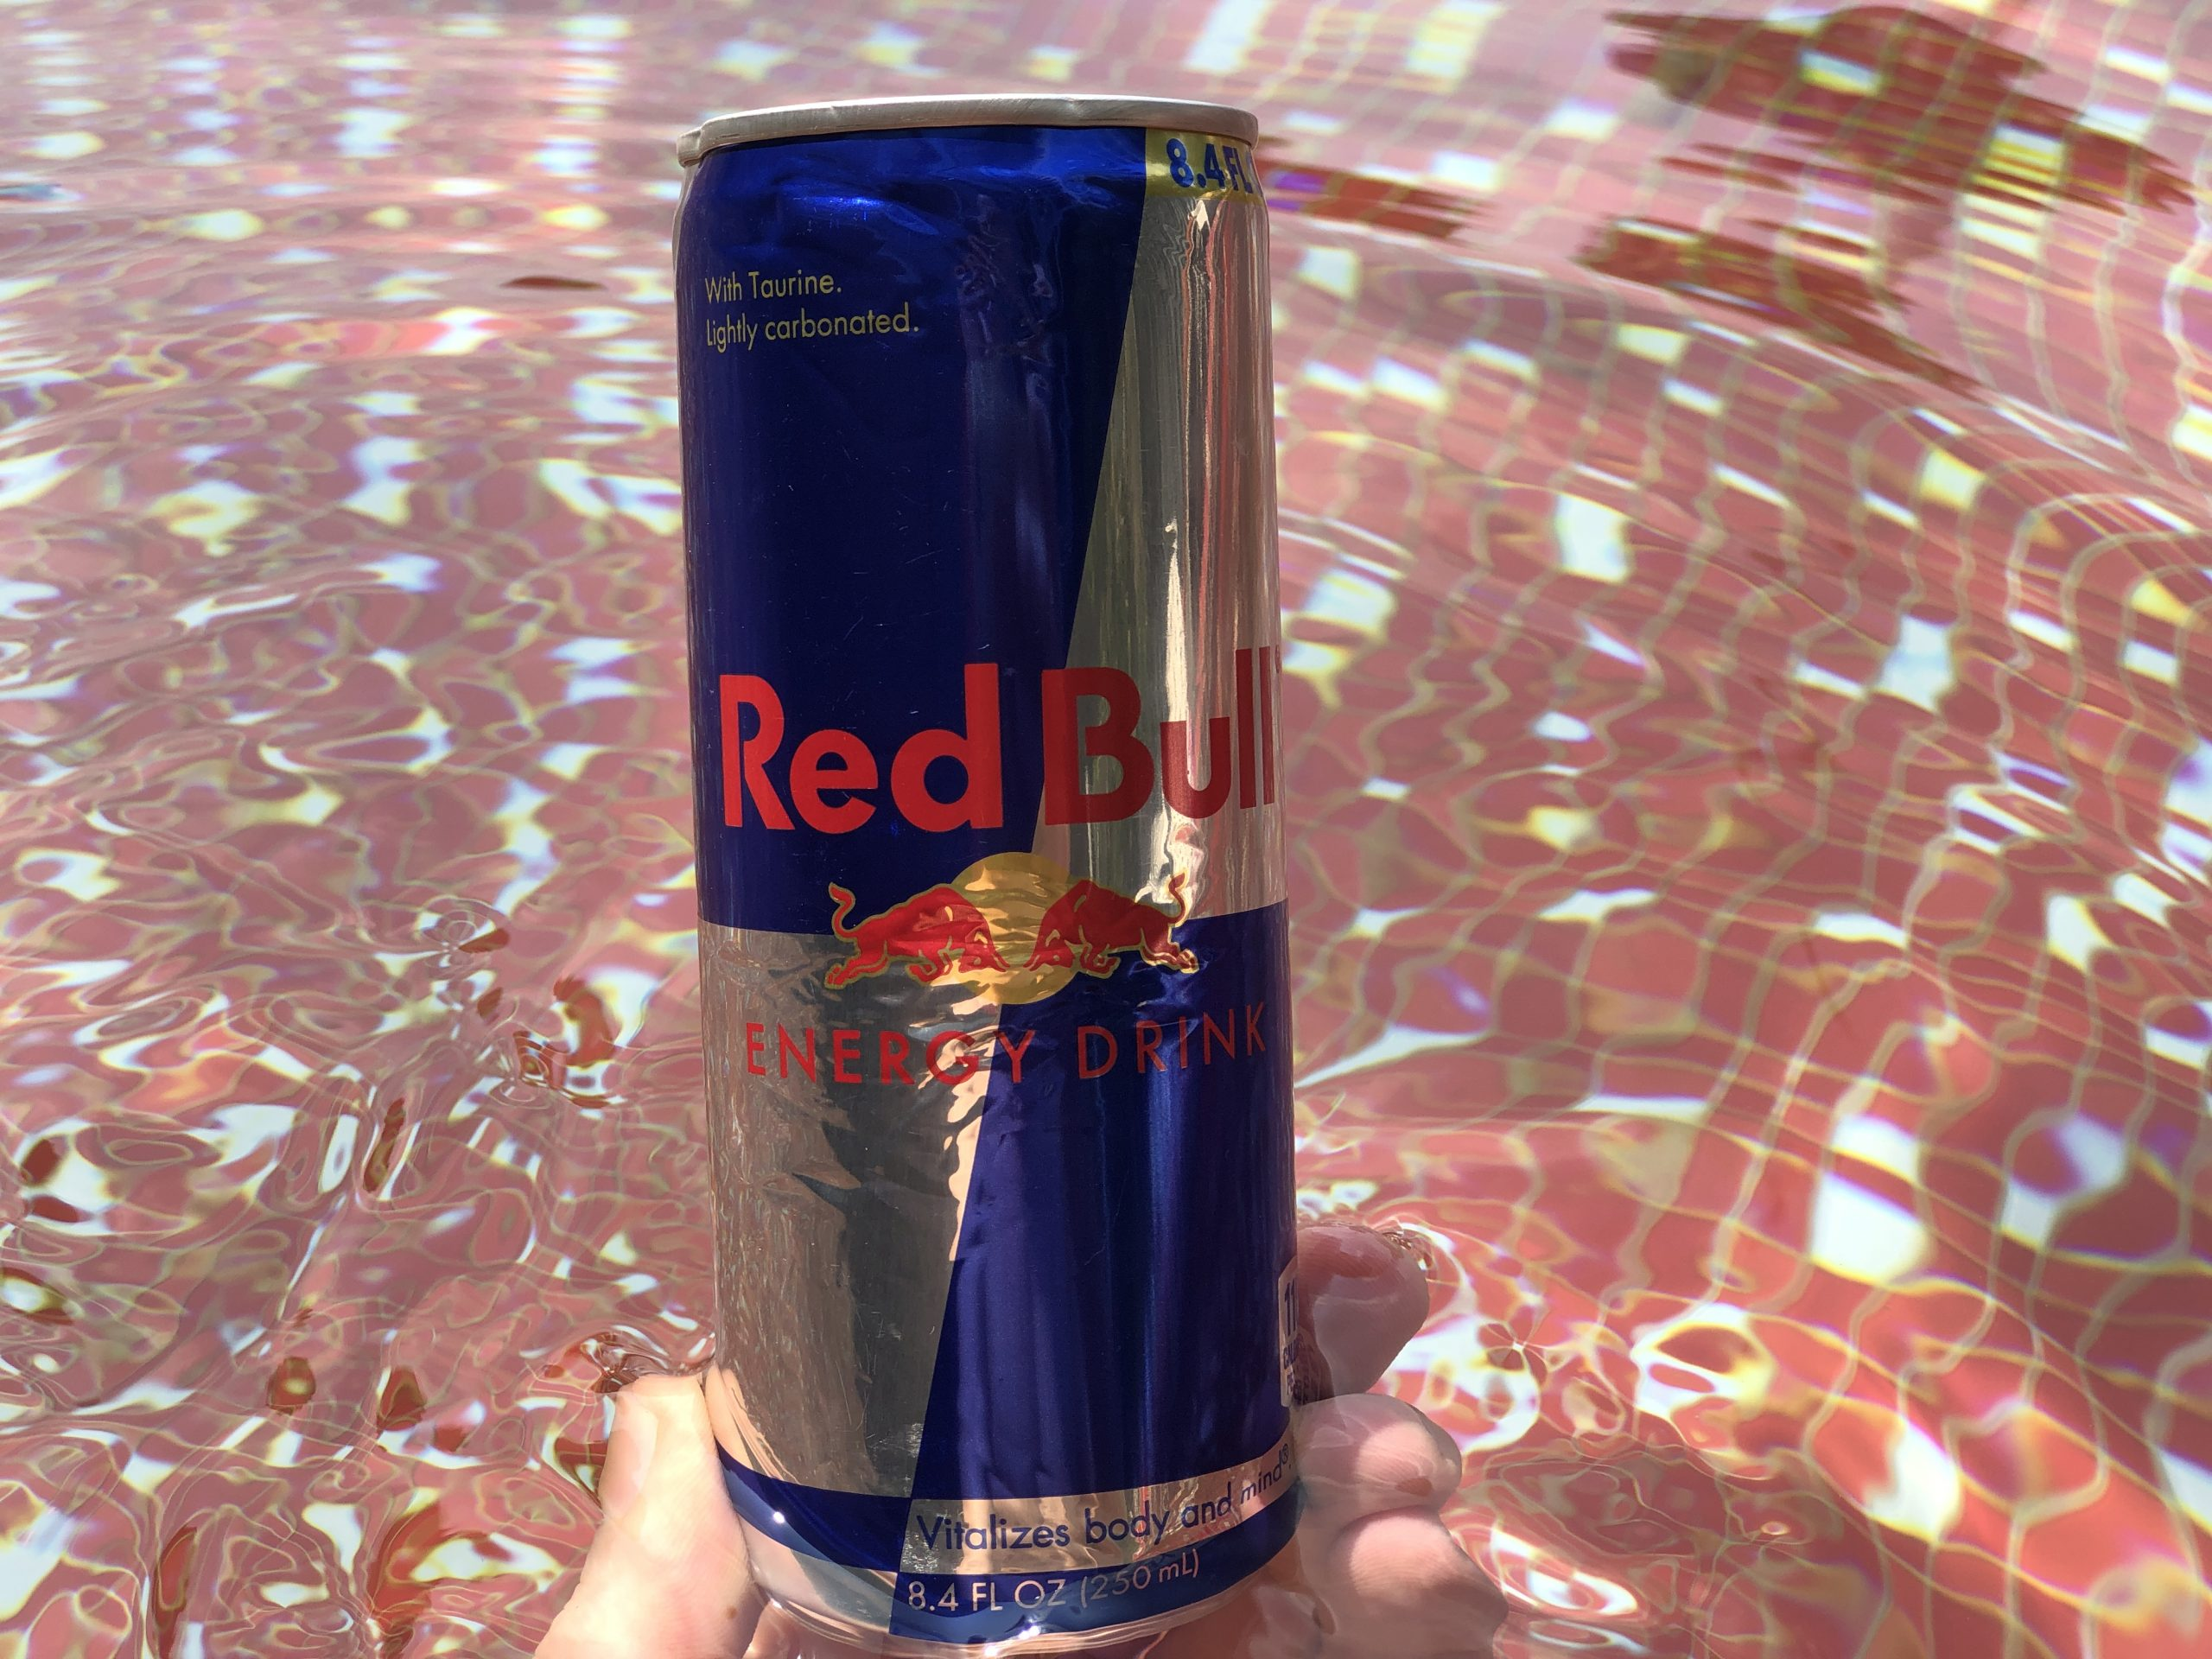 What Are The Benefits Of Drinking Red Bull? (Facts)